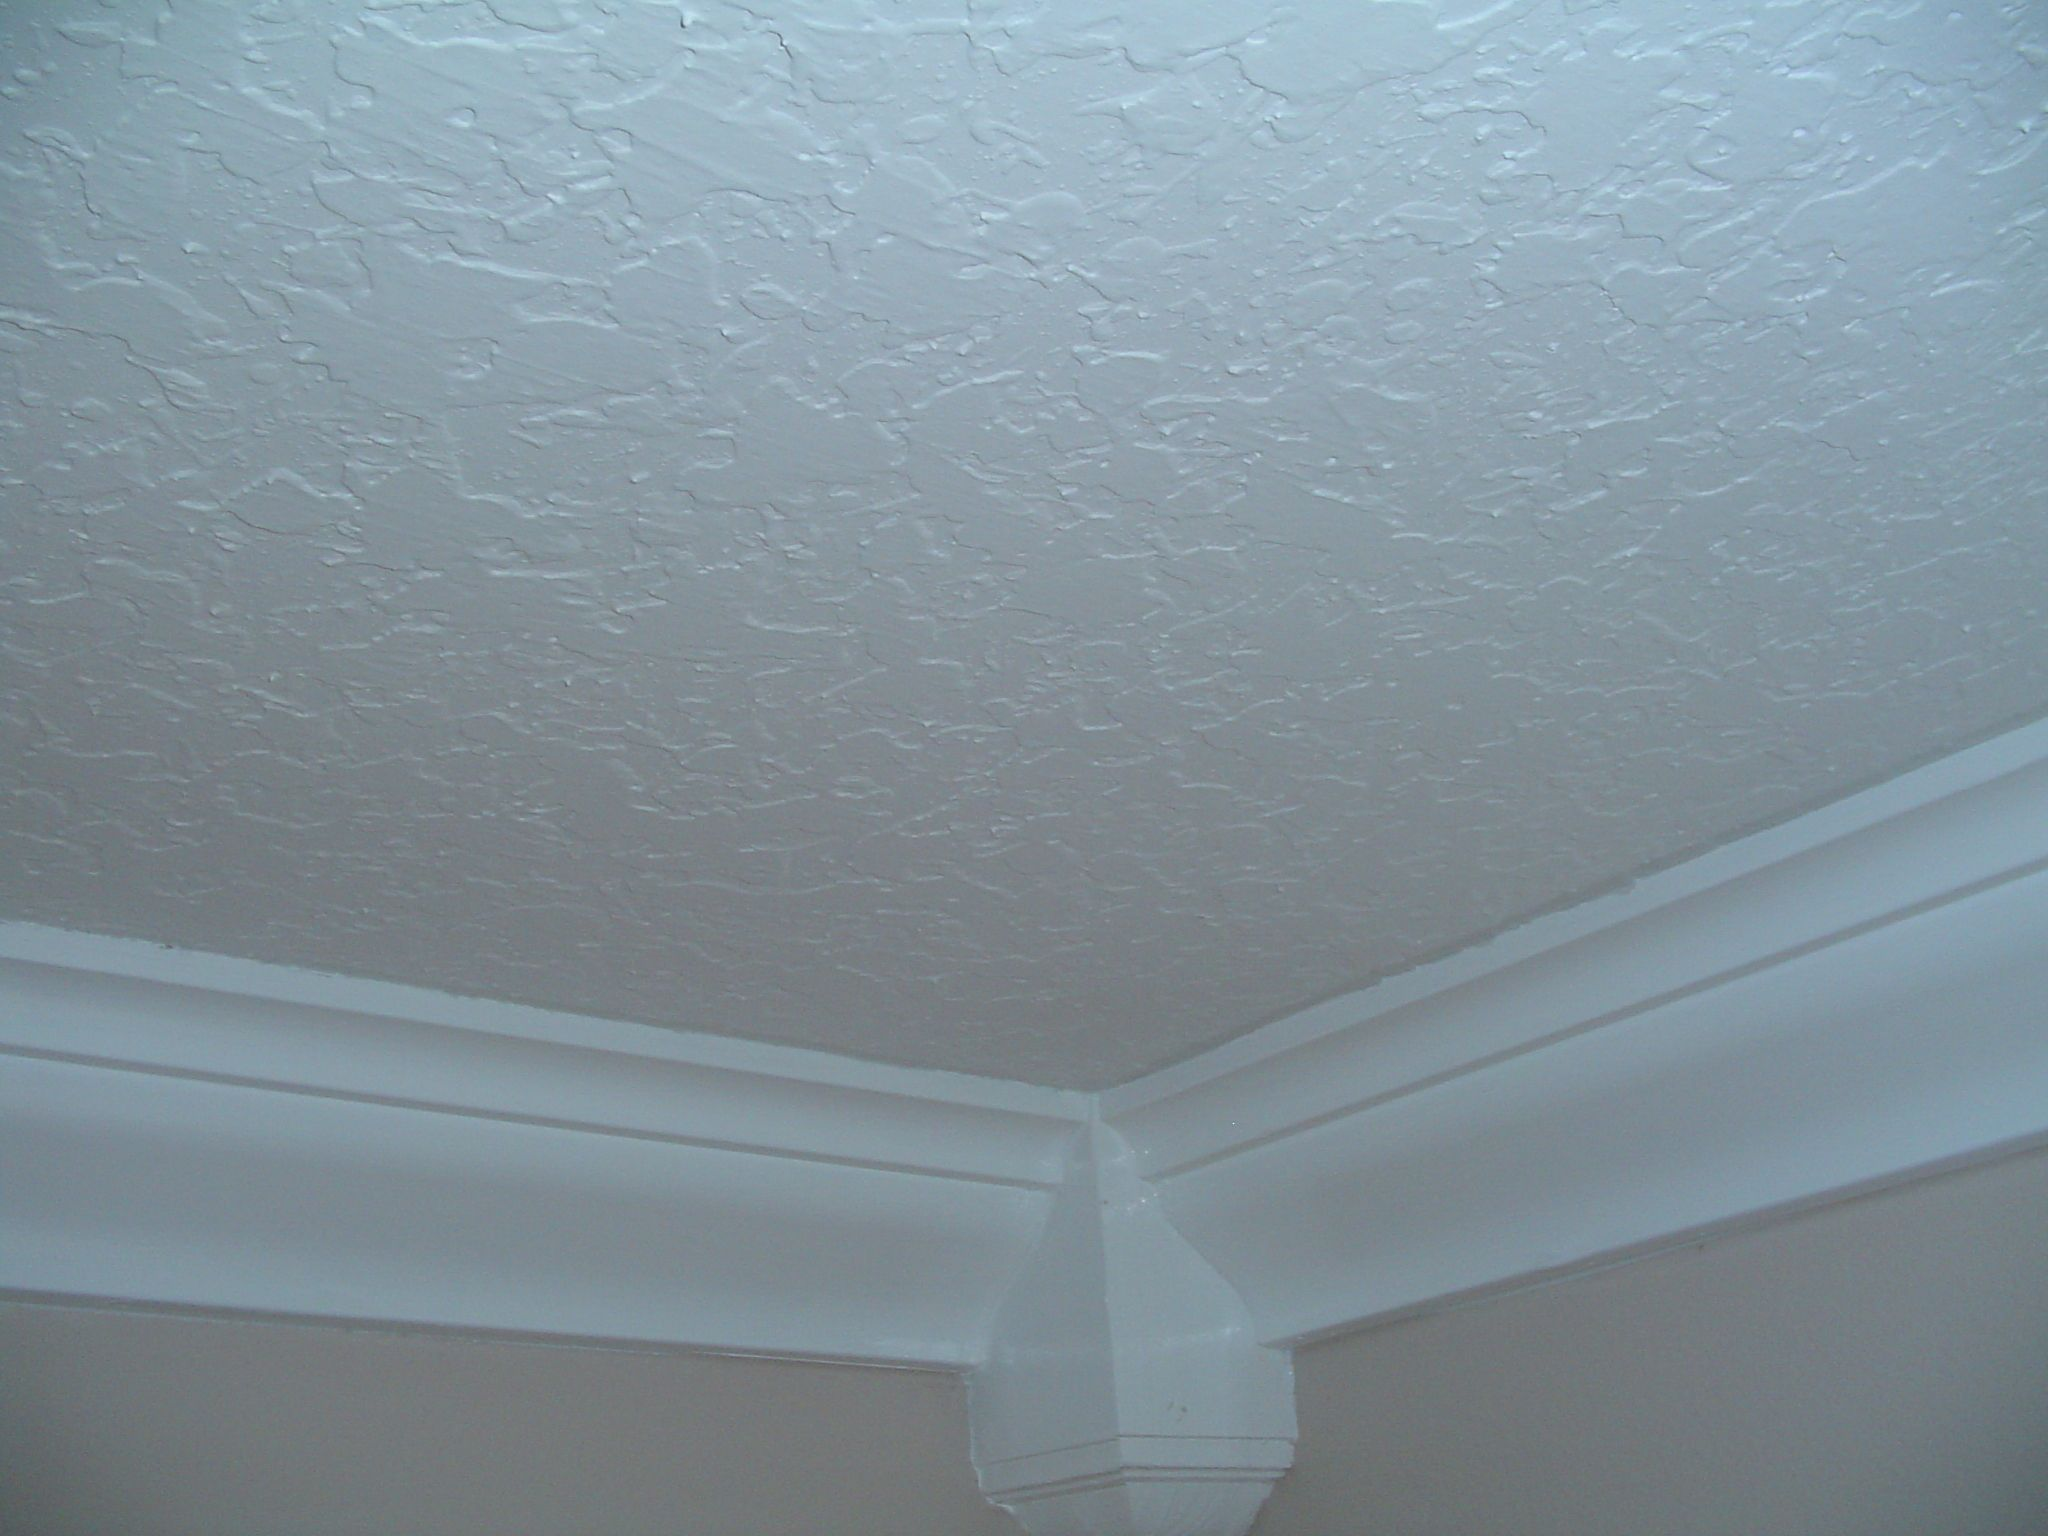 Knockdown ceiling Texture - Spanish Lace or Mediterranean ...